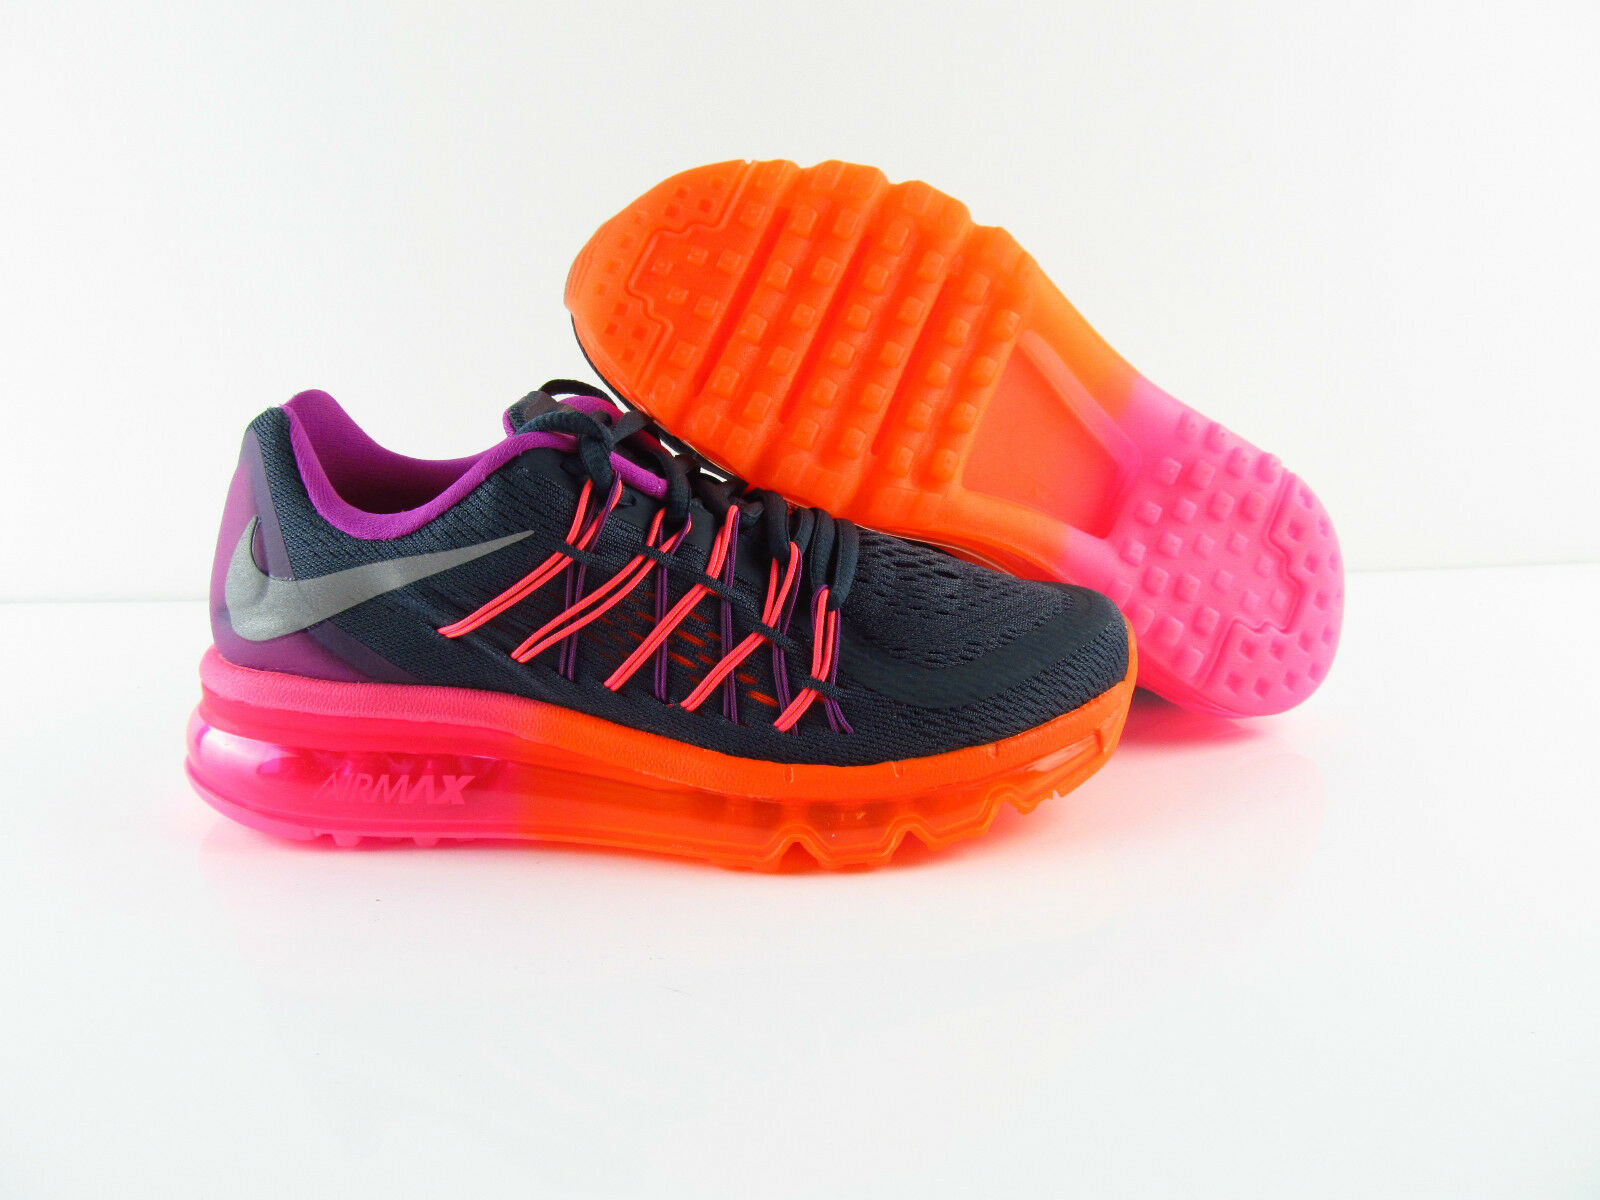 Nike Air Max 2015 Sneakers Running Orange Pink CHarcoal  New Eur 35.5